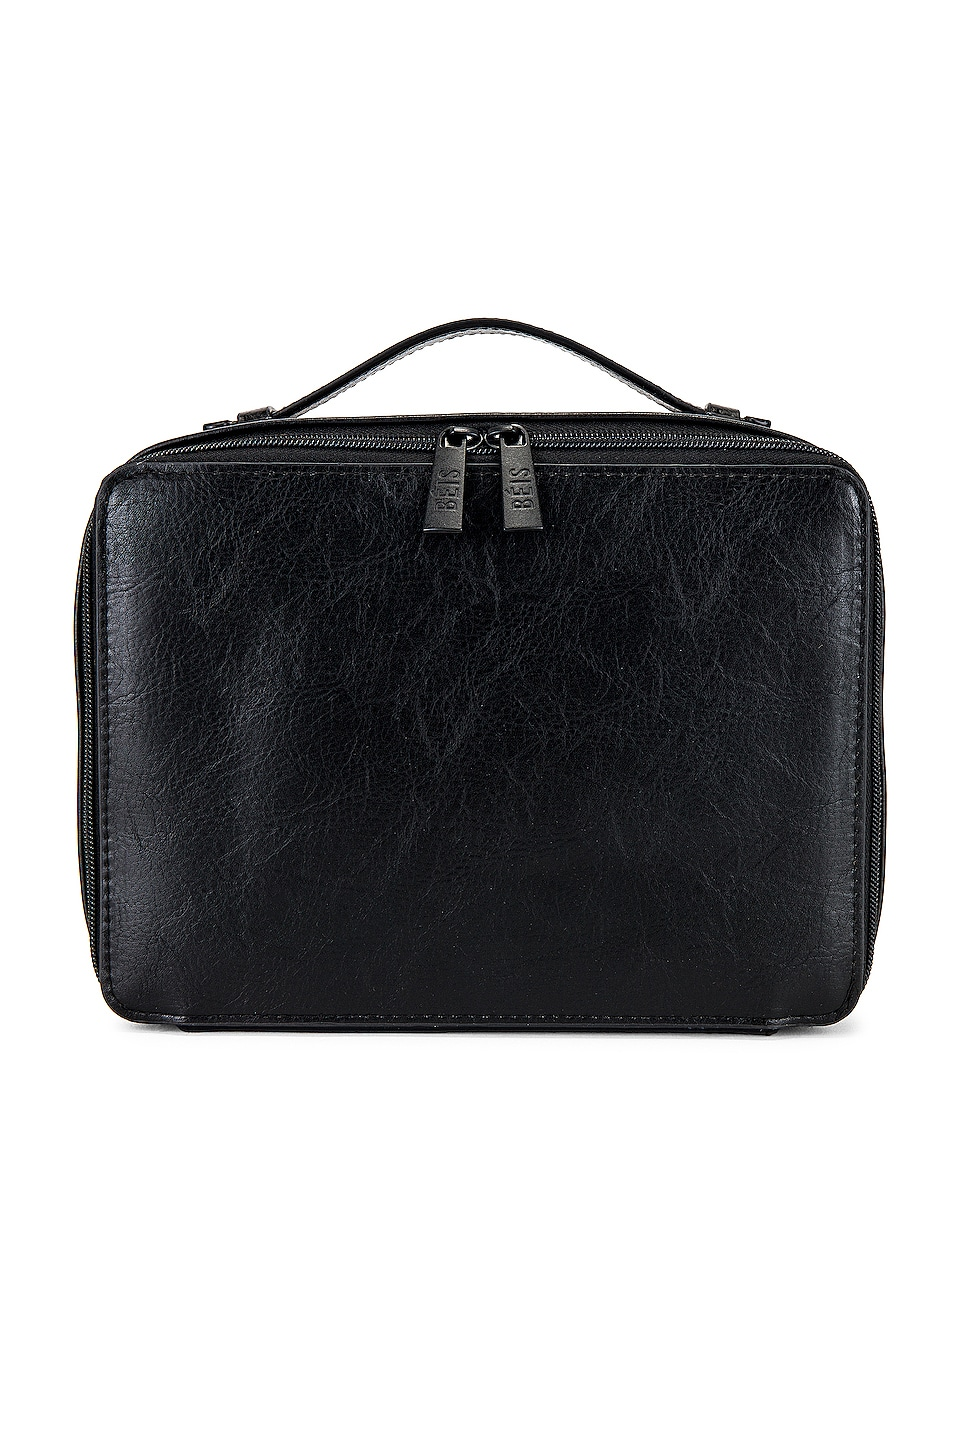 BEIS Cosmetic Case in Black